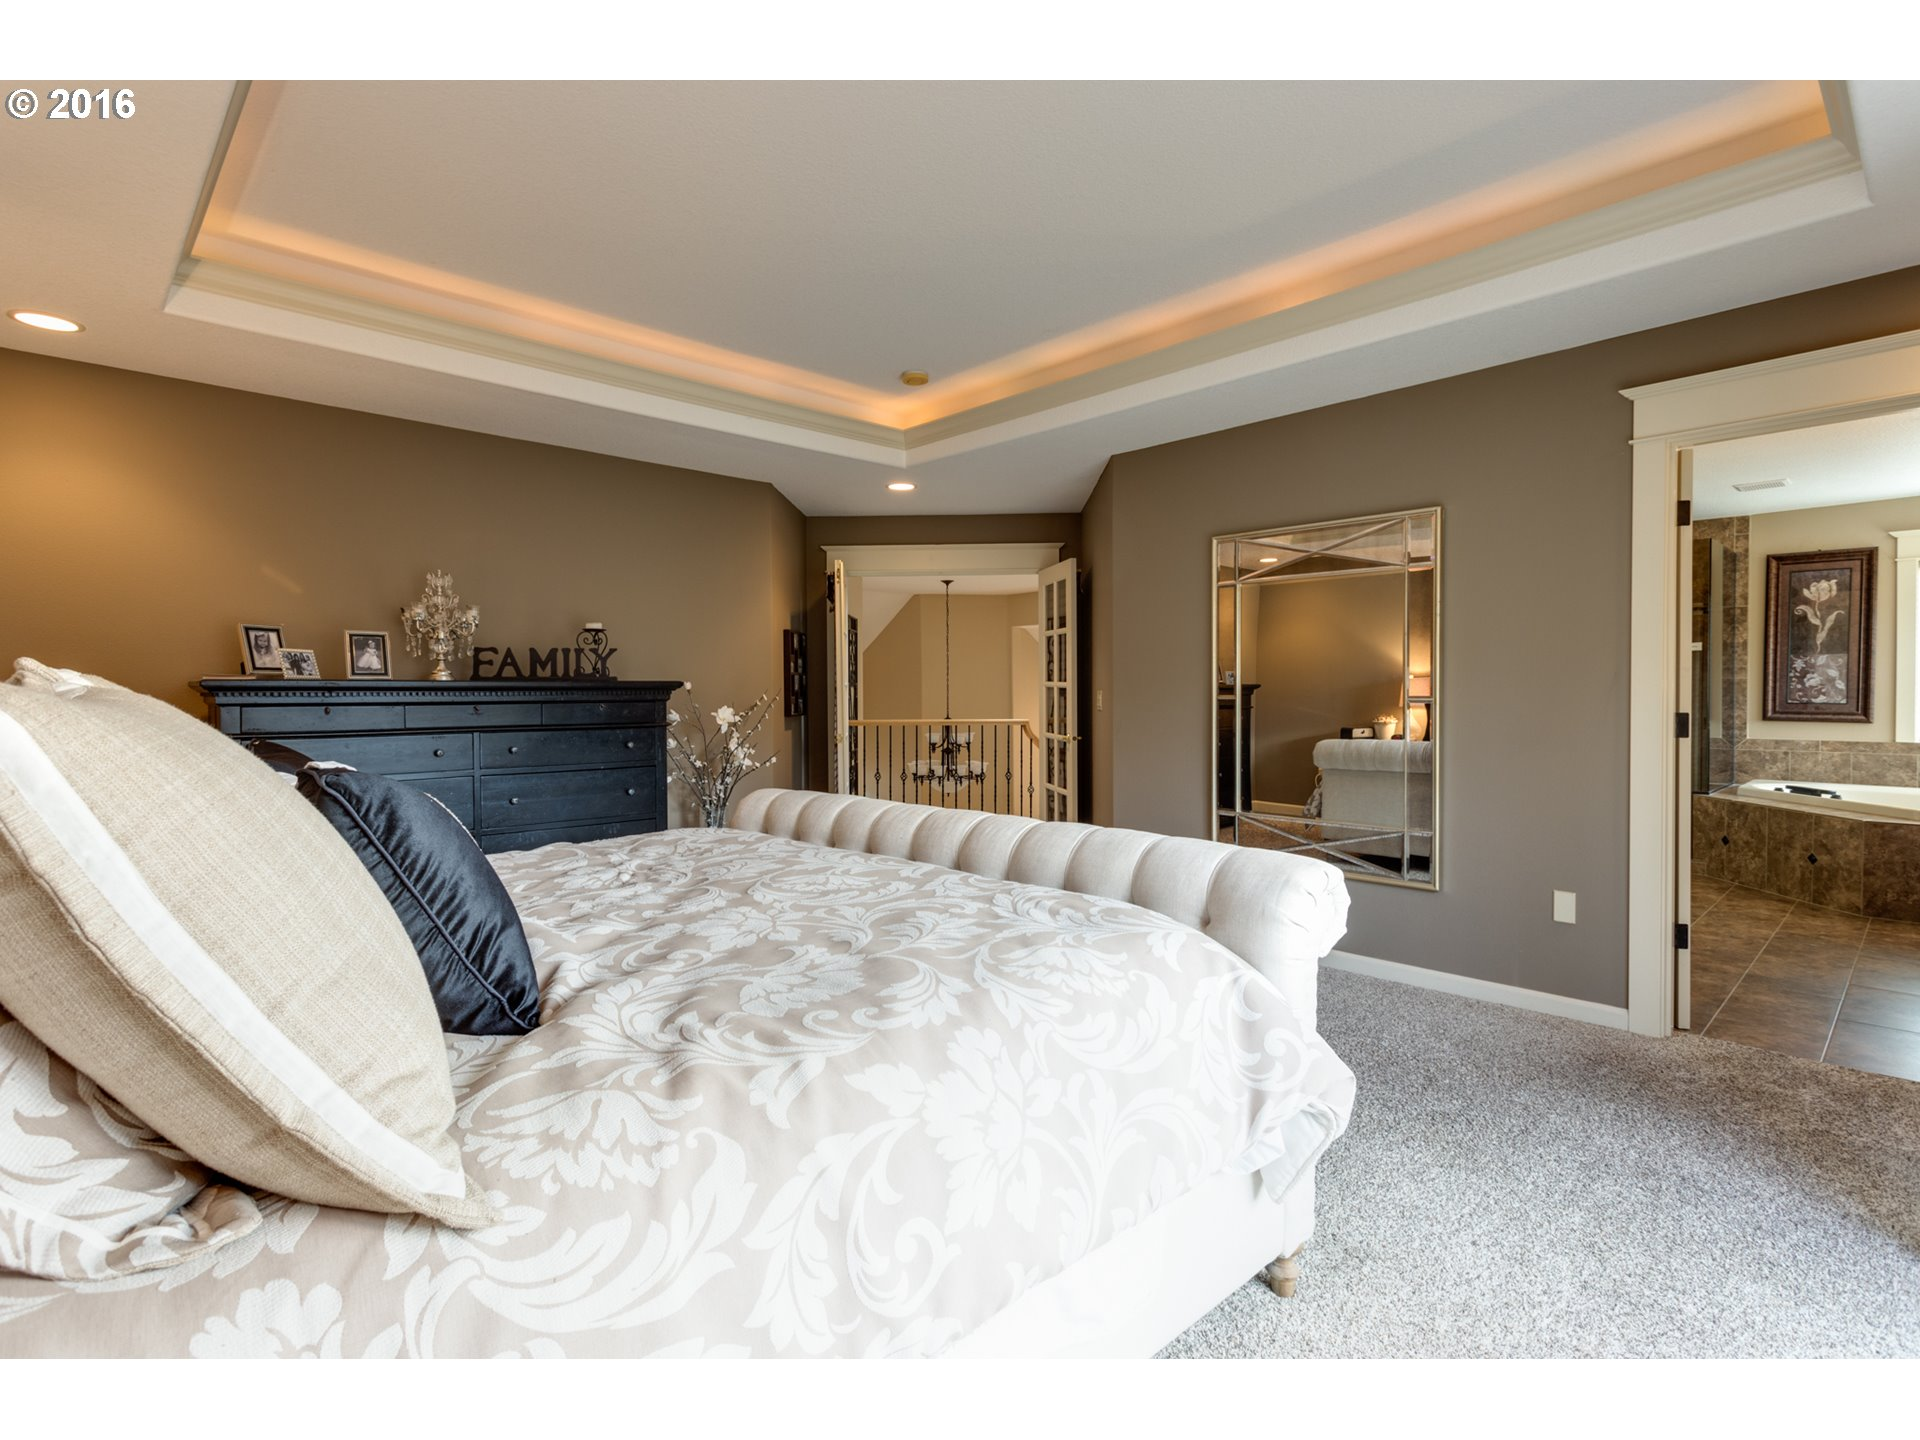 MASTER BEDROOM COVED CEILING